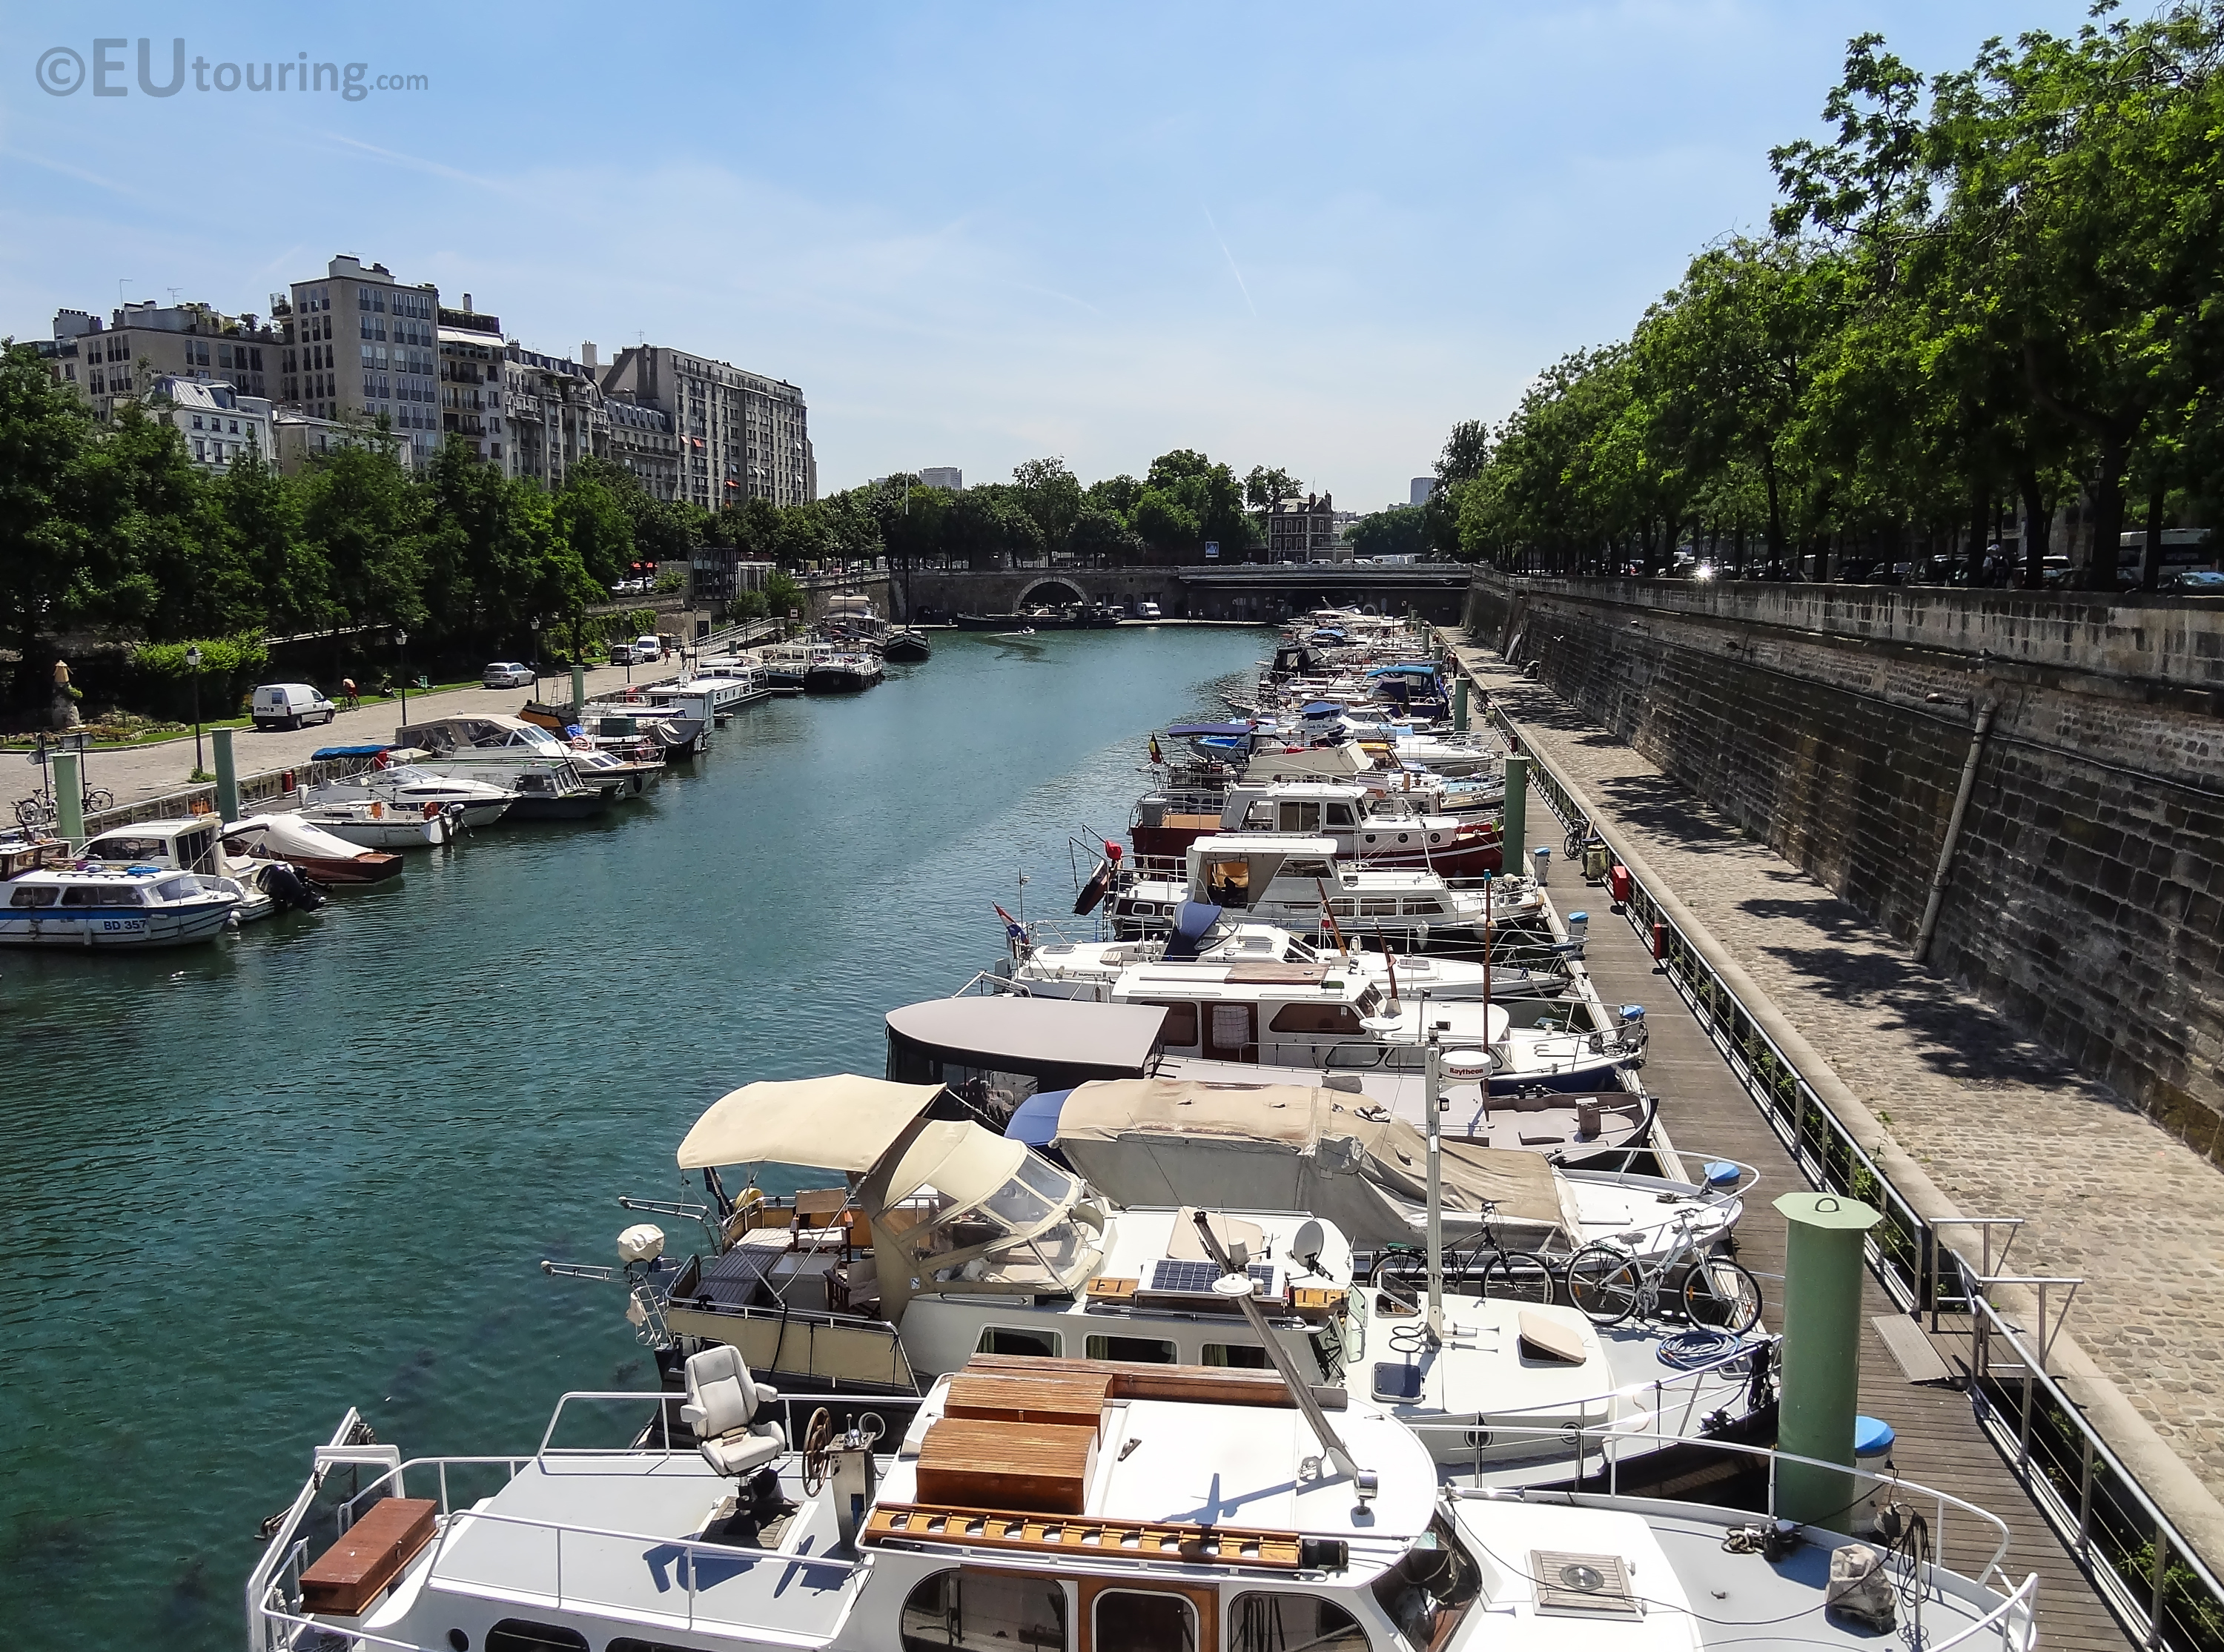 Boats within Port de l'Arsenal